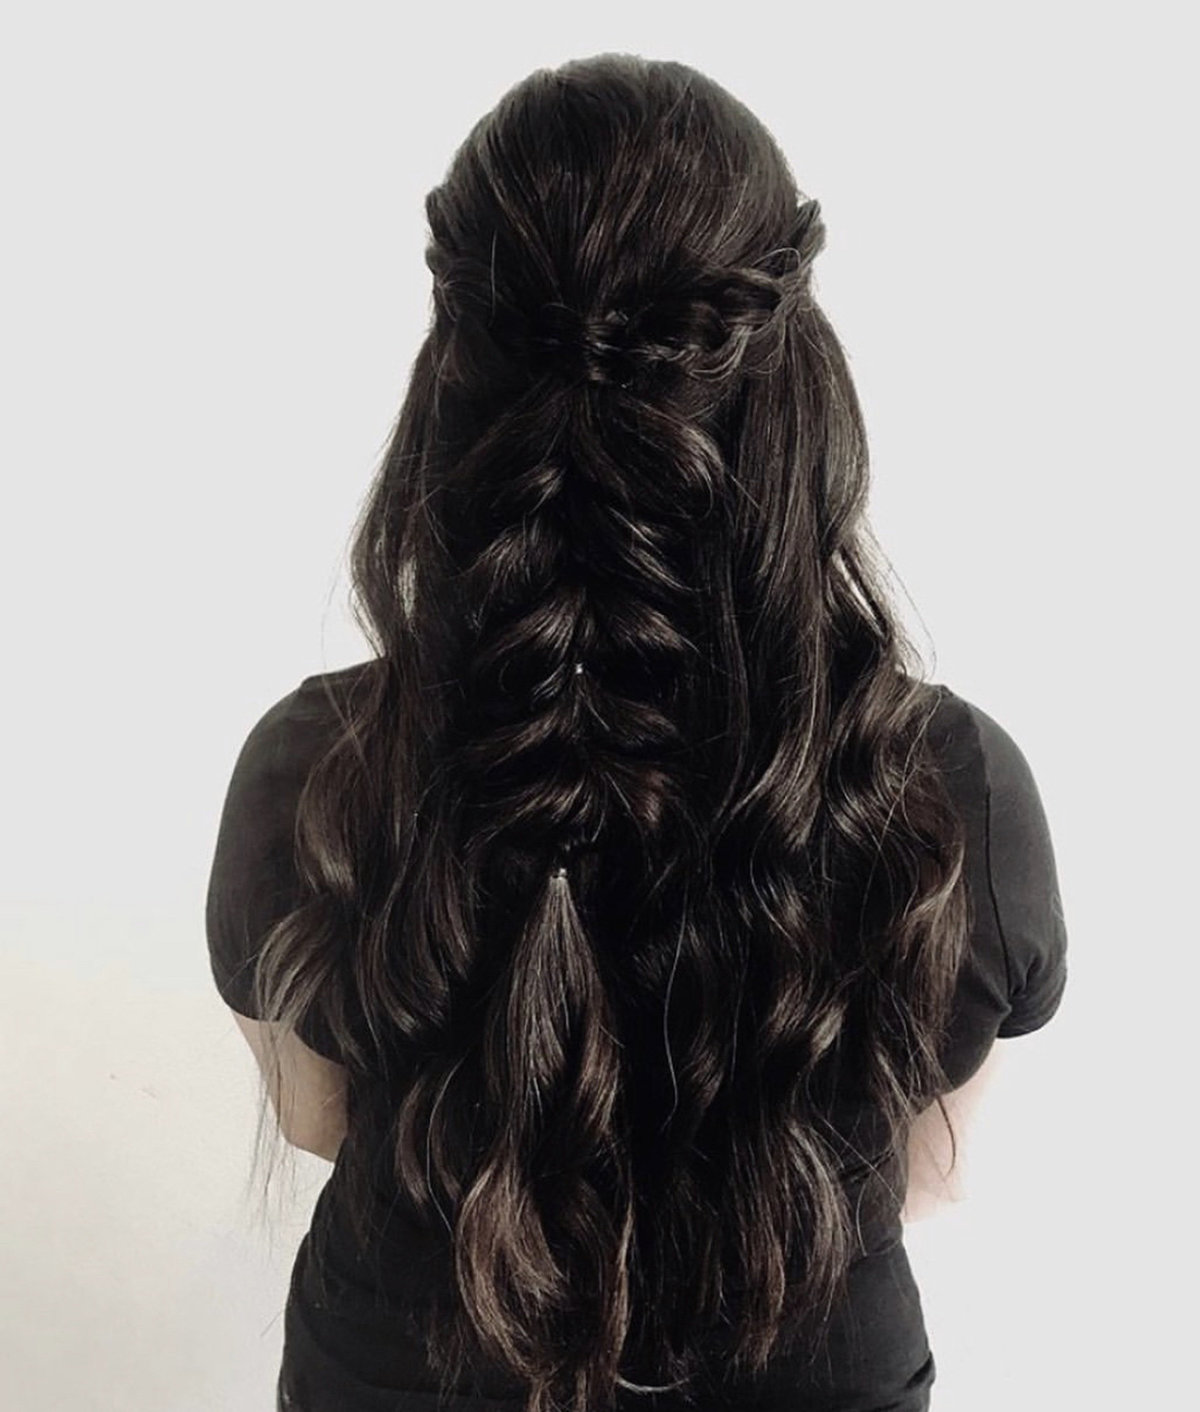 Long Hair Braided Hairstyle